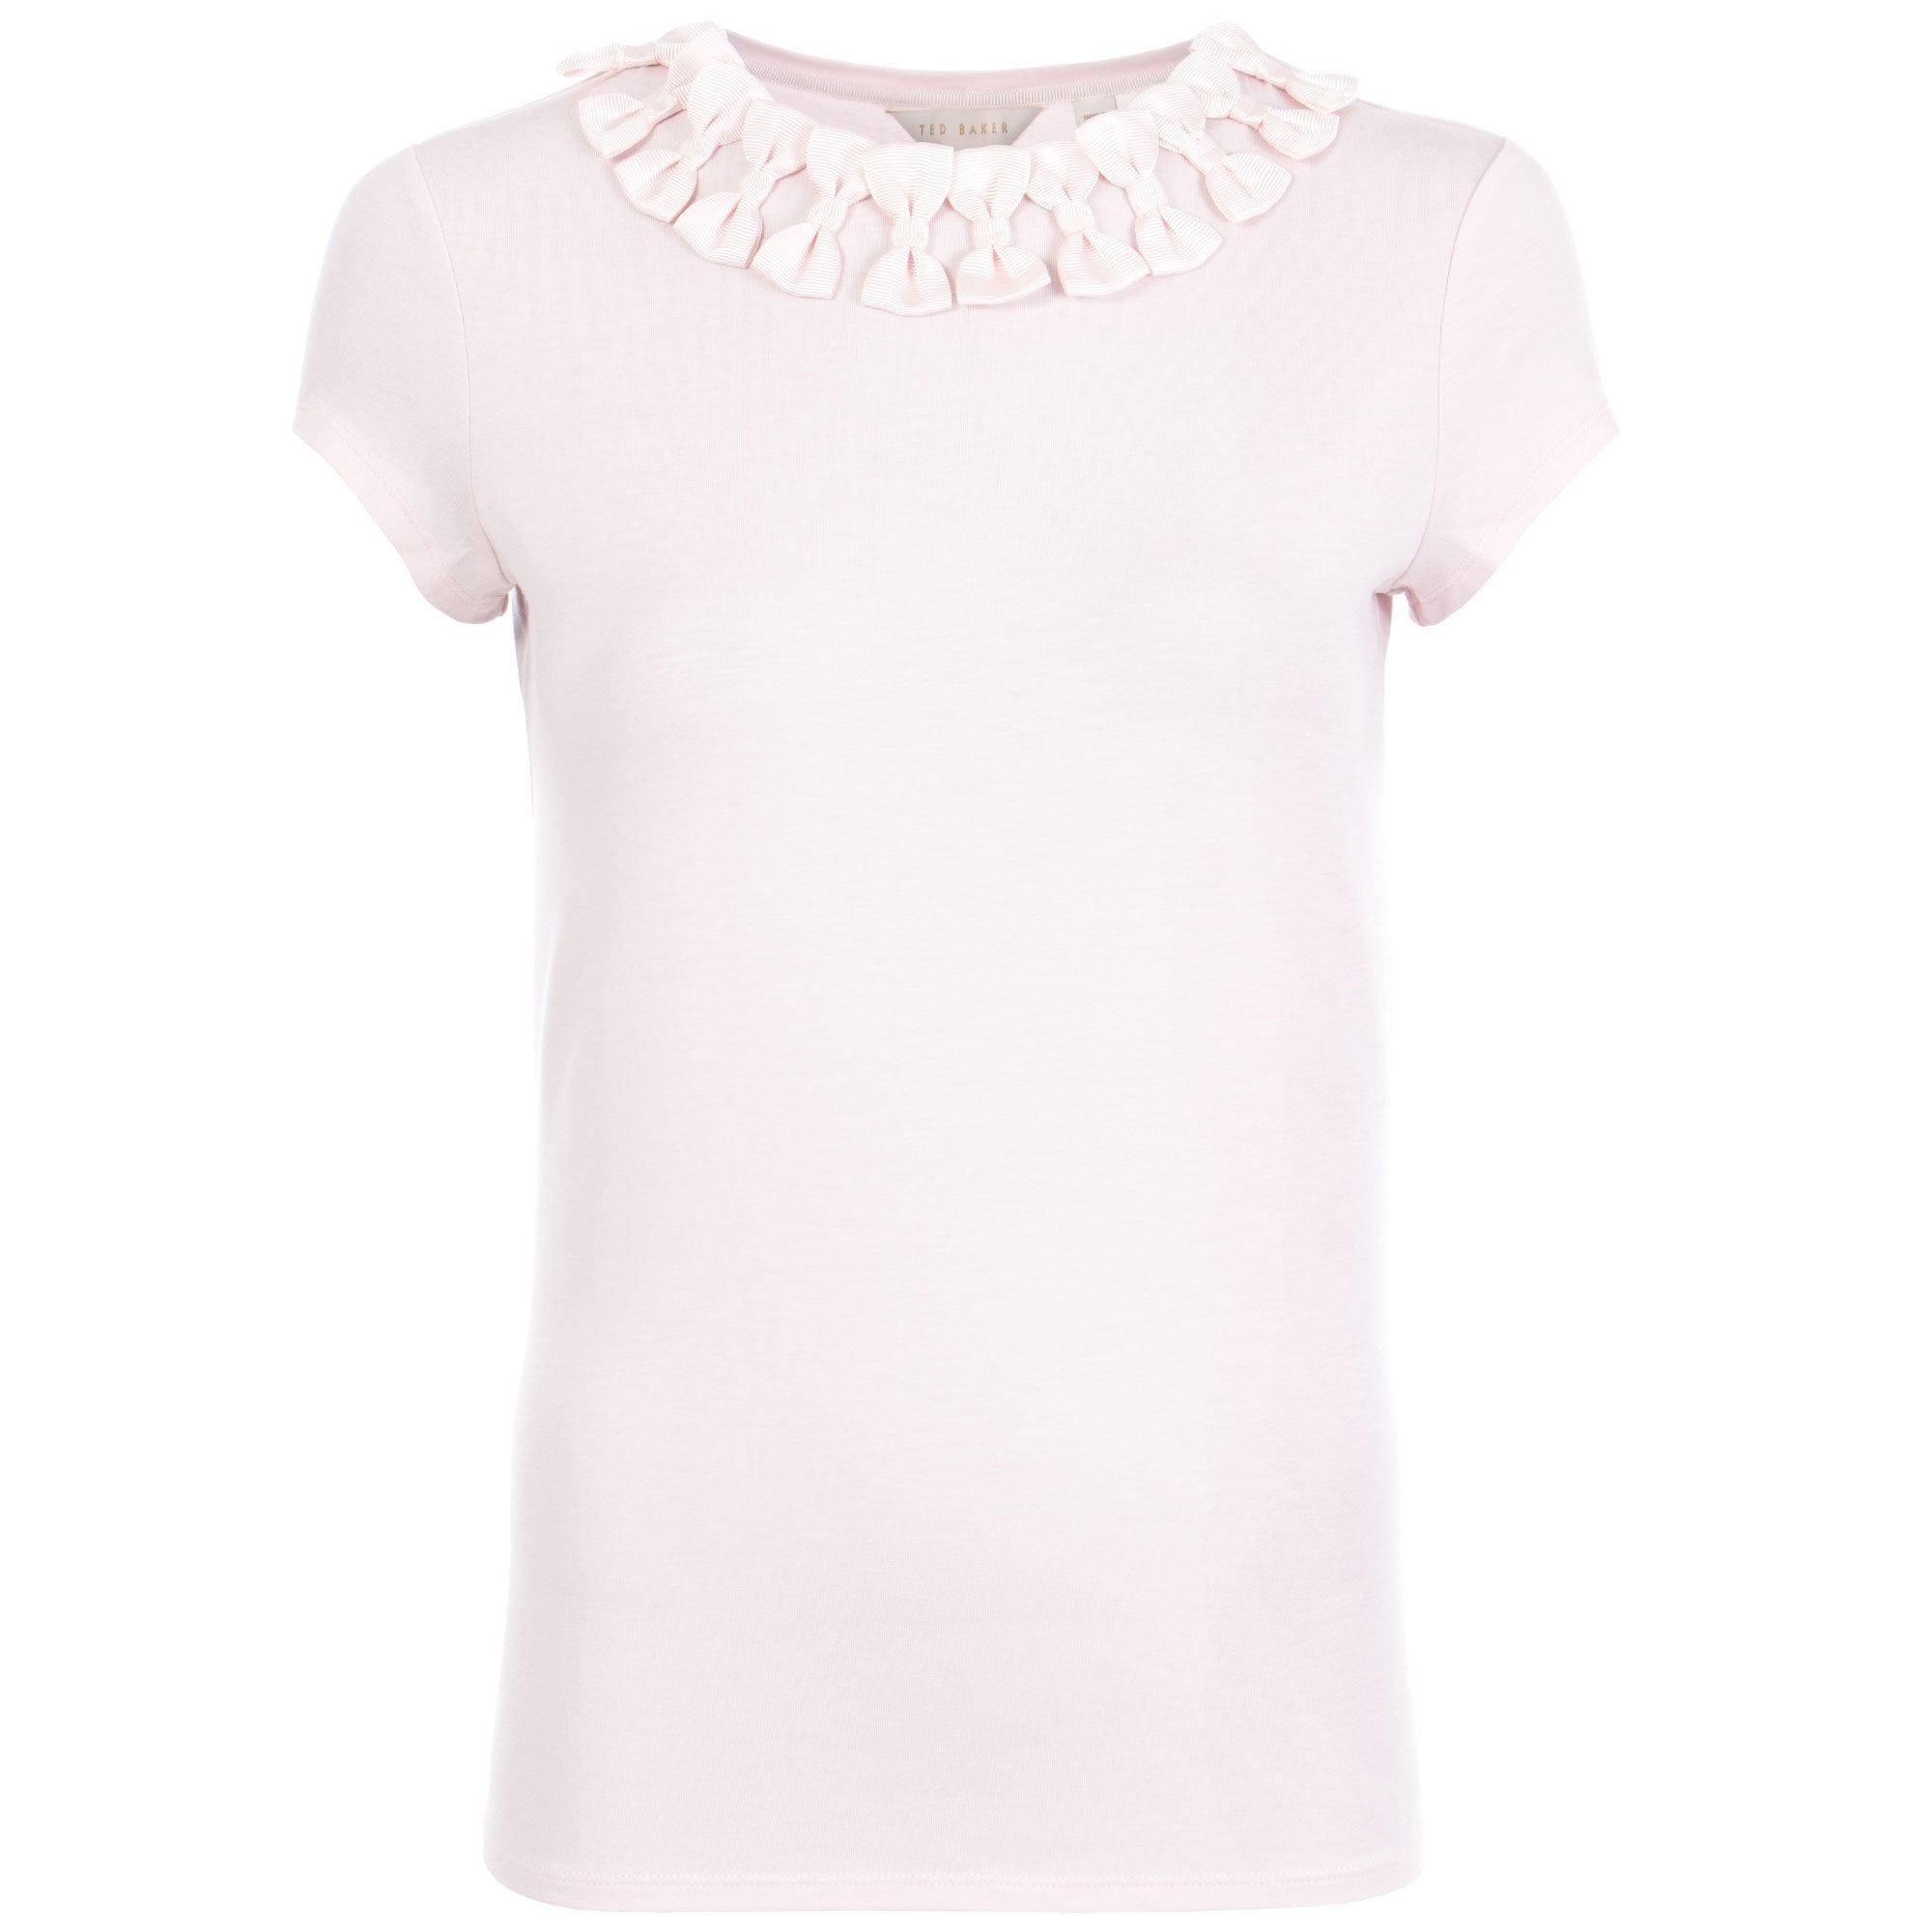 7b51ca6a80c72 Ted Baker Charre Bow Neck Trim T-shirt in Pink - Lyst